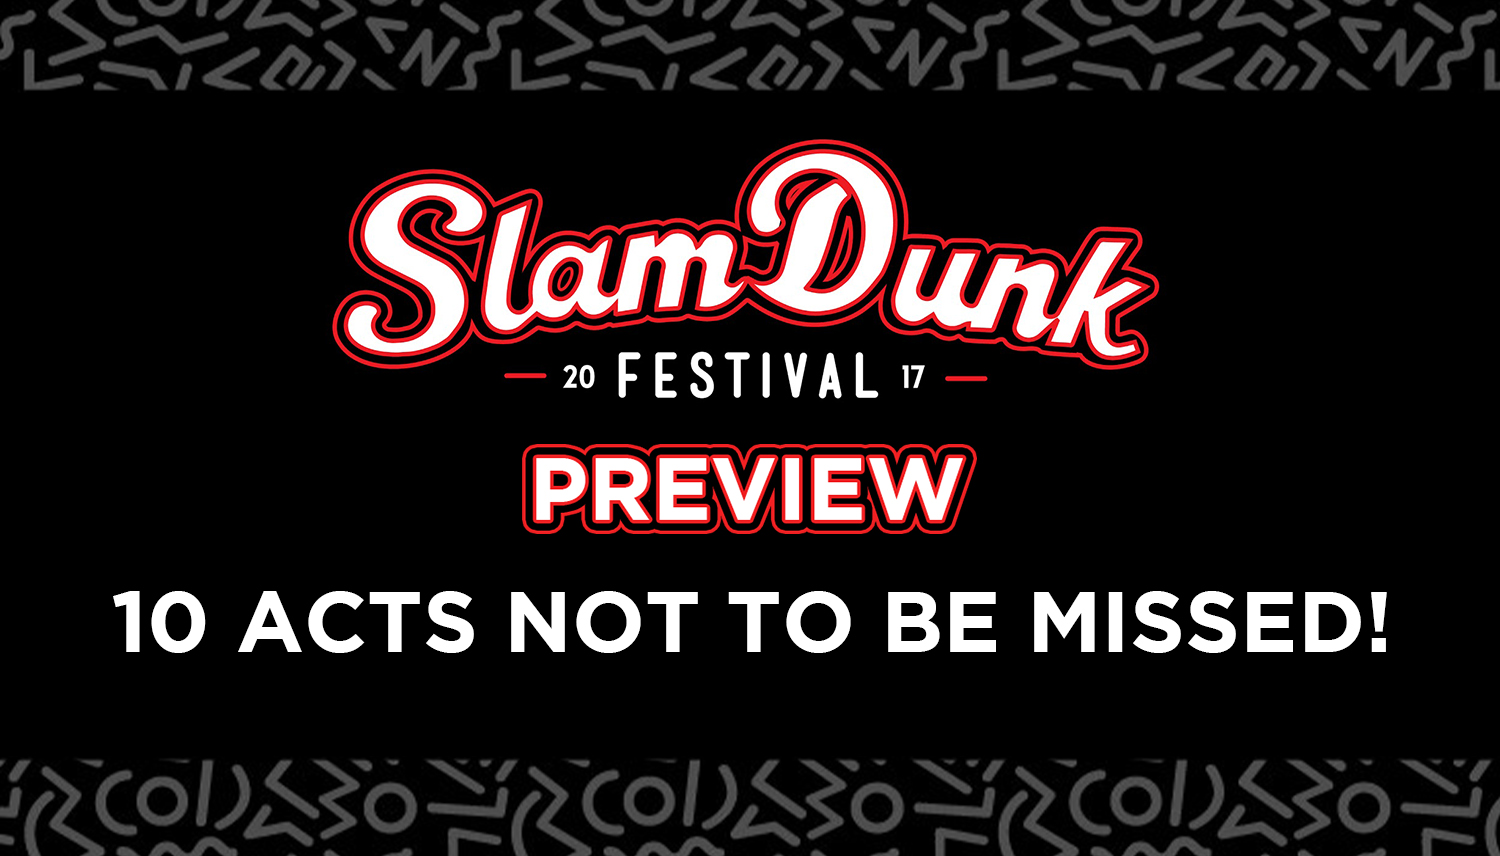 slam dunk preview 2017